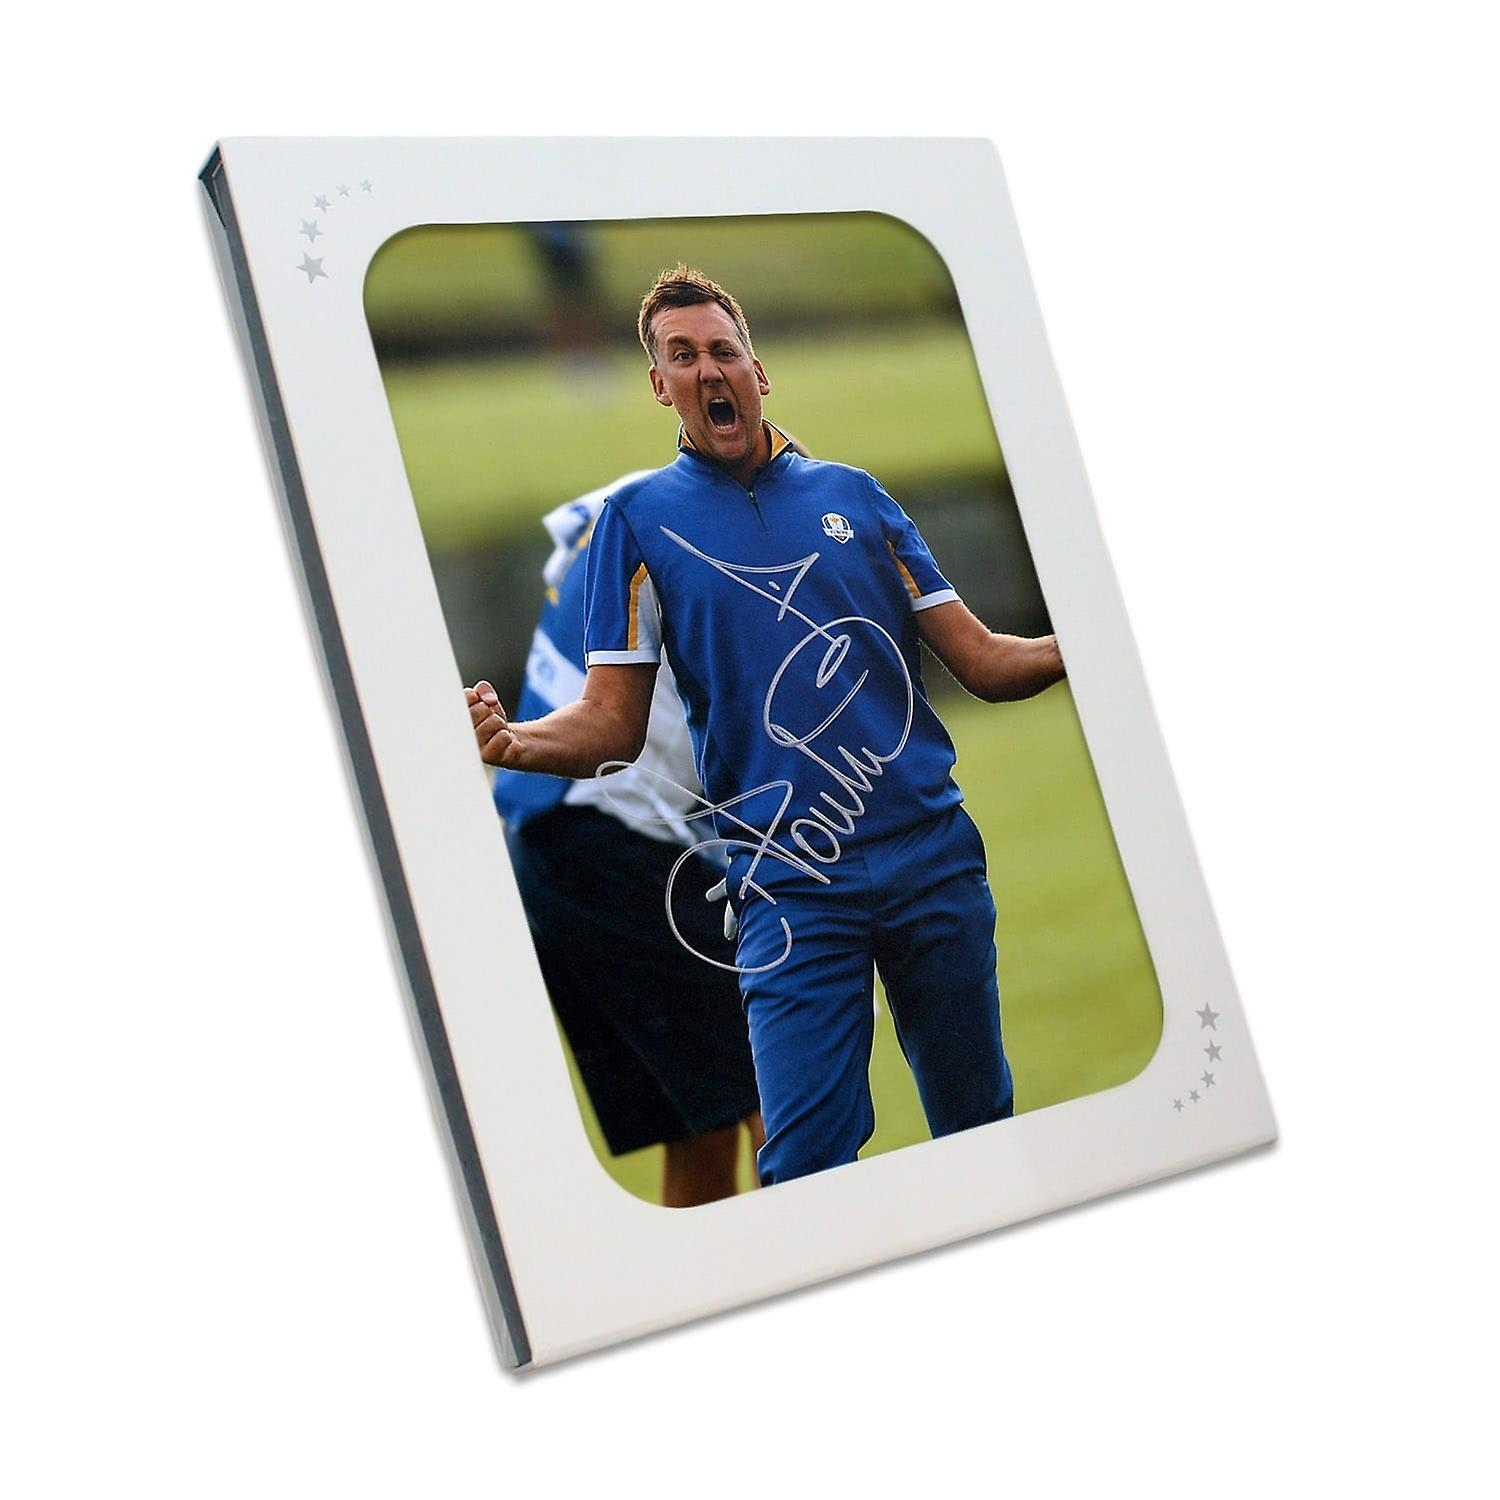 Ian Poulter Signed Photo  The Posthomme In Gift Box